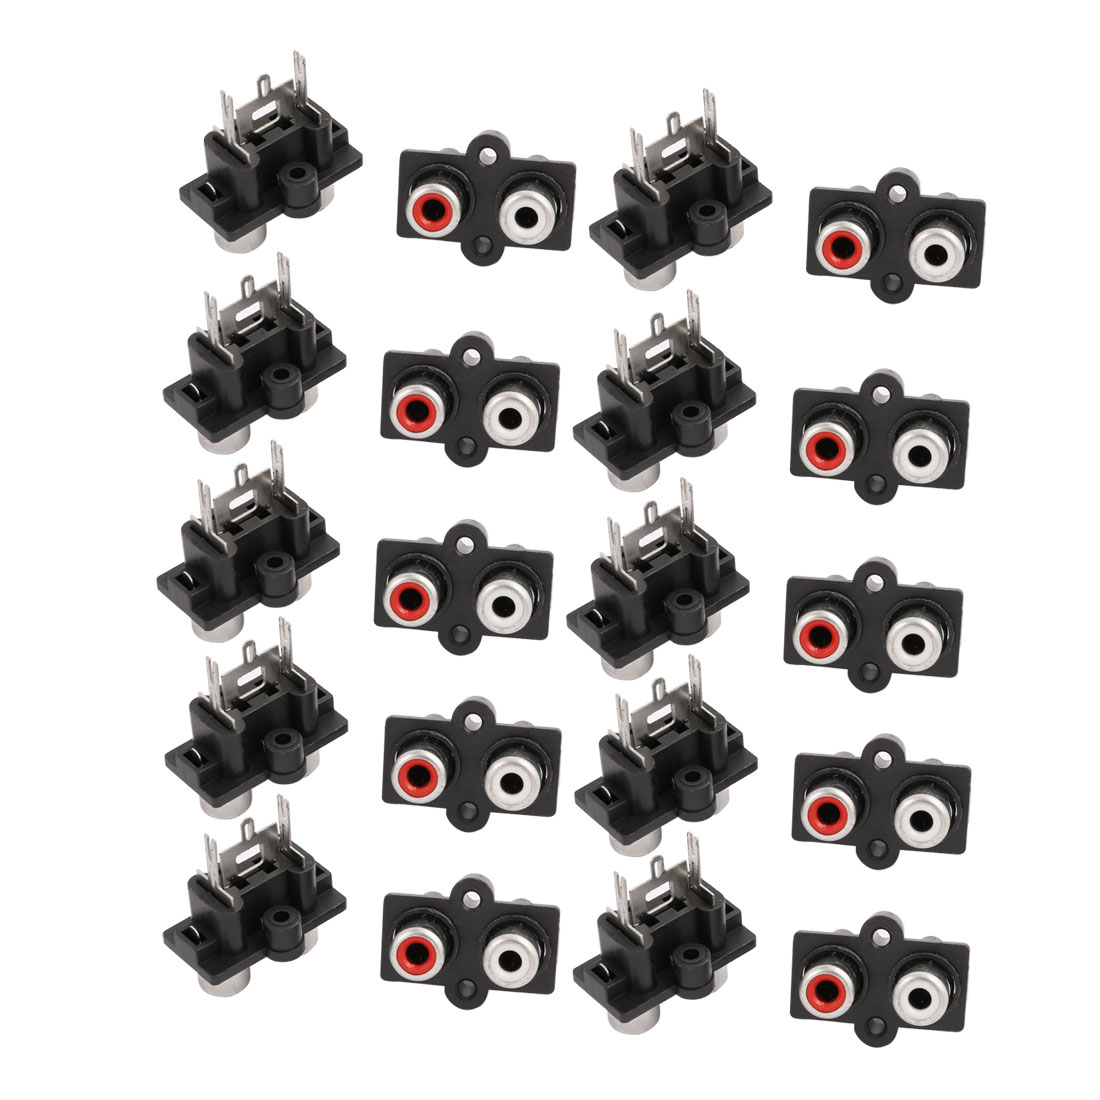 20 Pcs Panel Mount 2 RCA Female Outlet AV Concentric Socket Connector